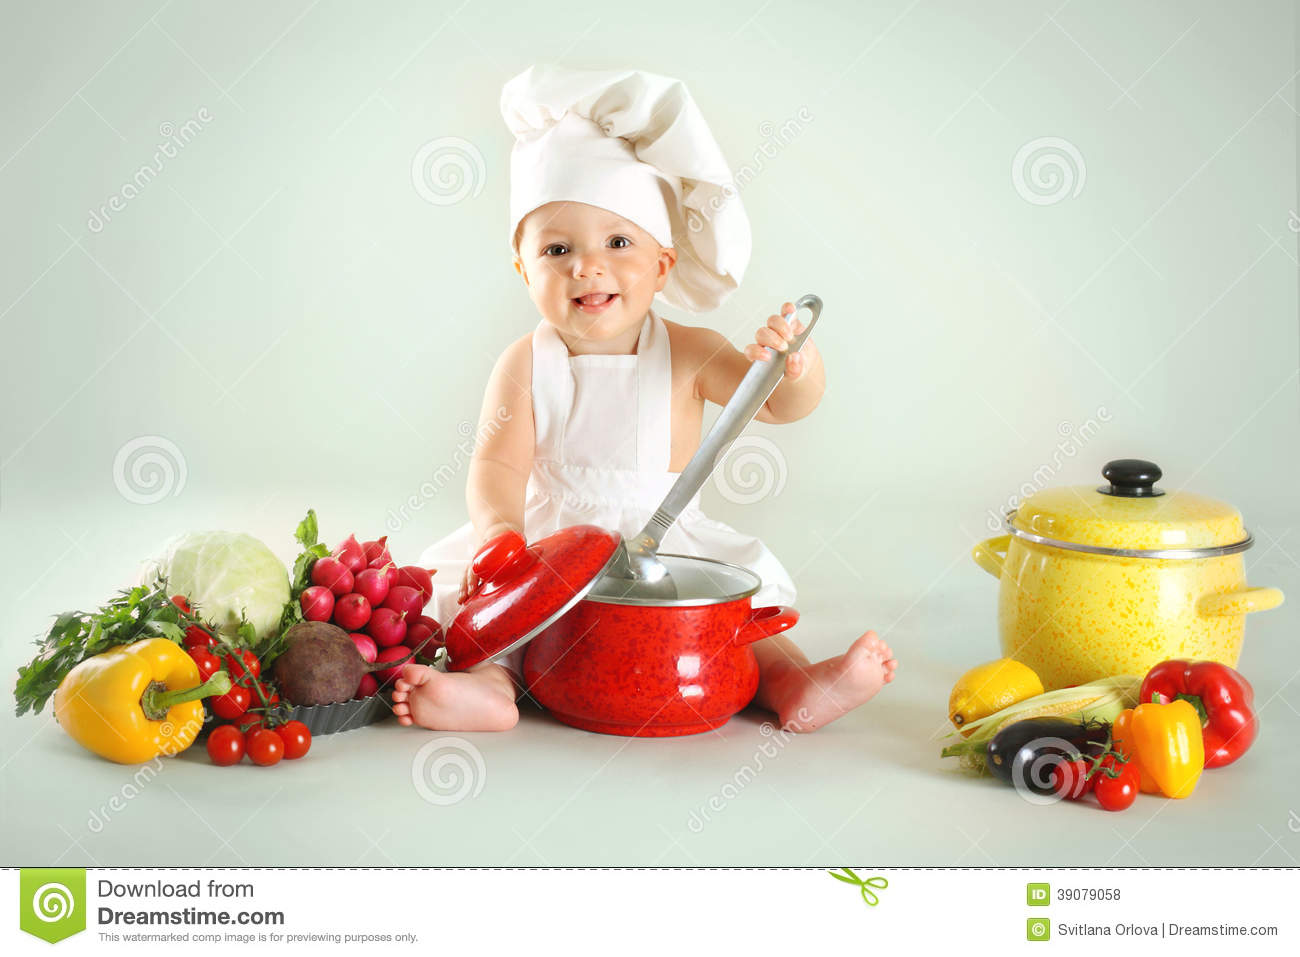 995e51aec19 Baby Wearing A Chef Hat With Vegetables And Pan Stock Photo - Image ...